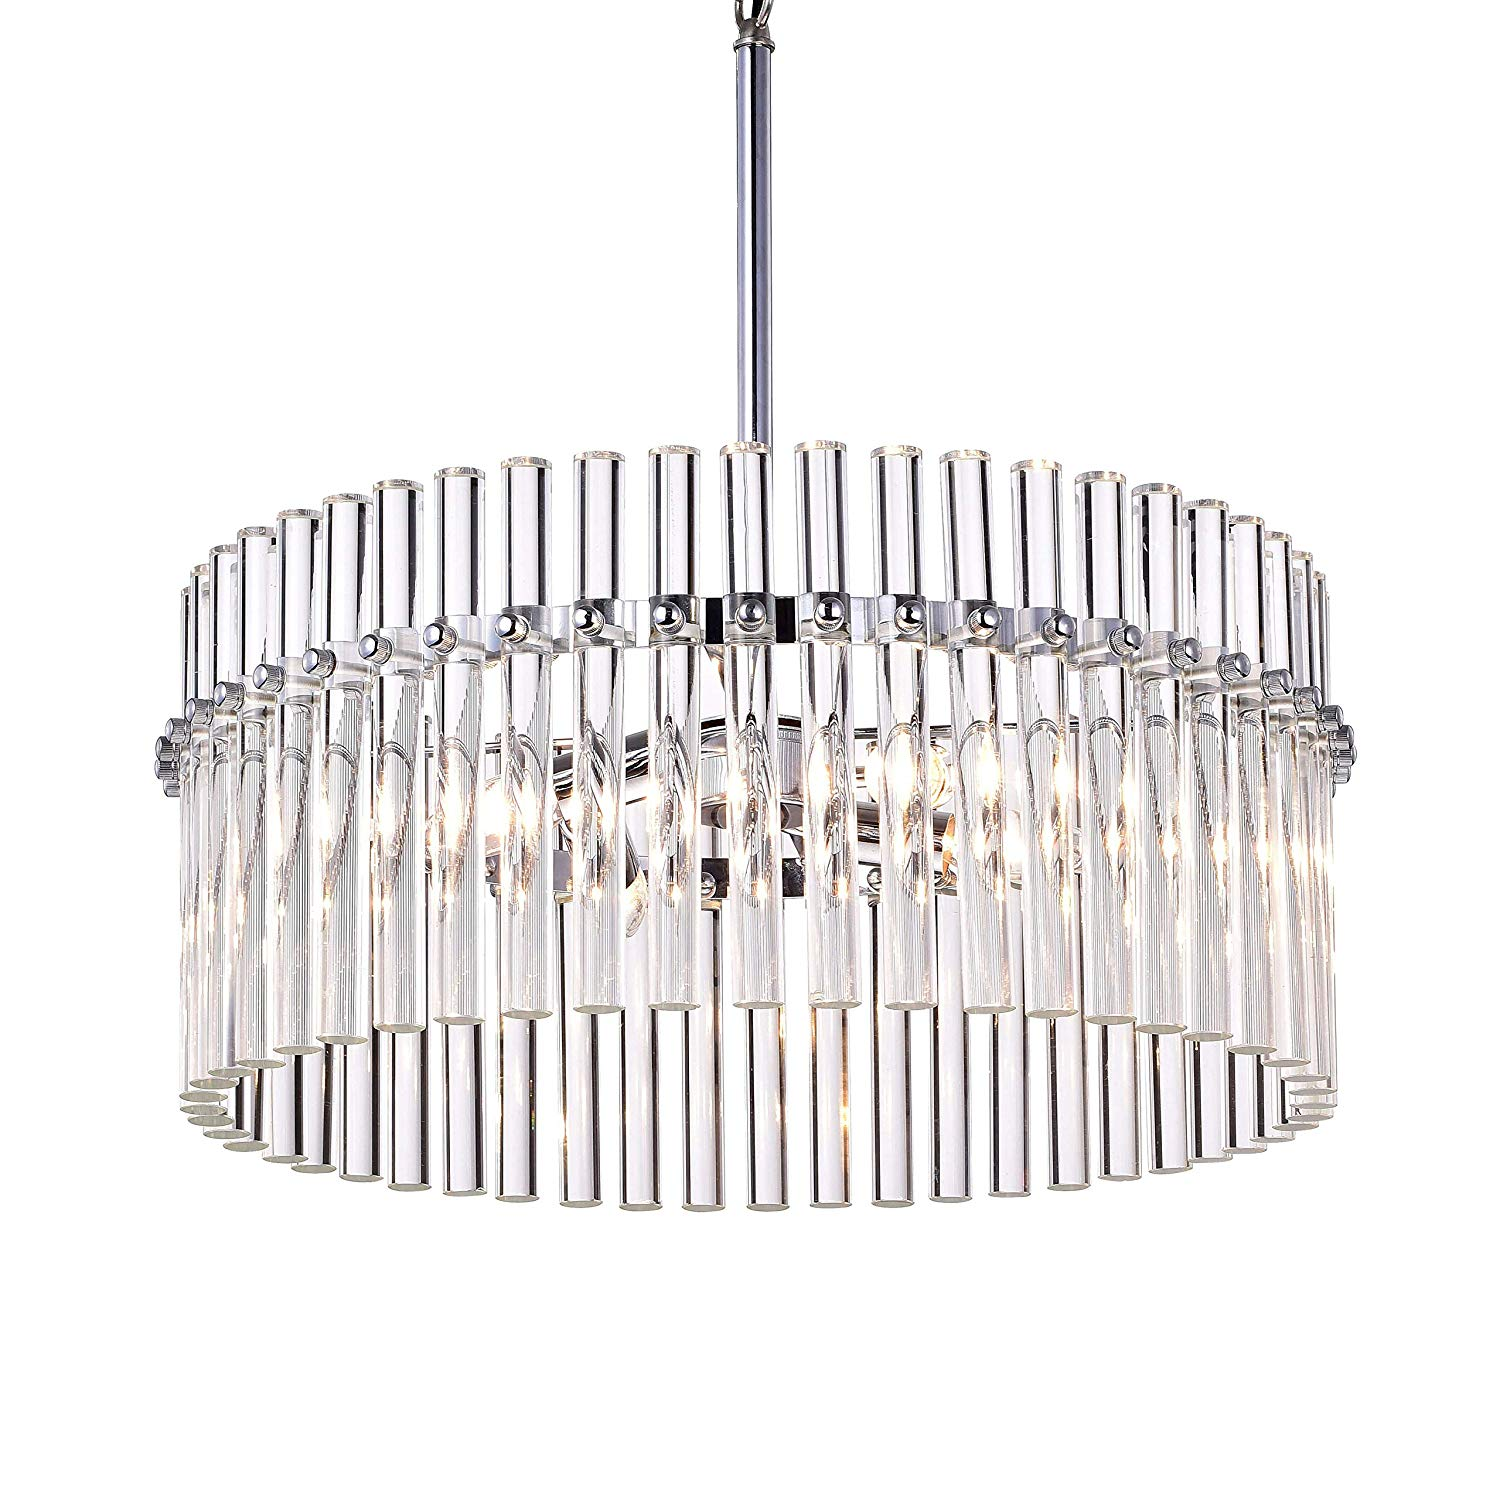 Buy Crystal Chrome Chandelier Pendant Light With Crystal